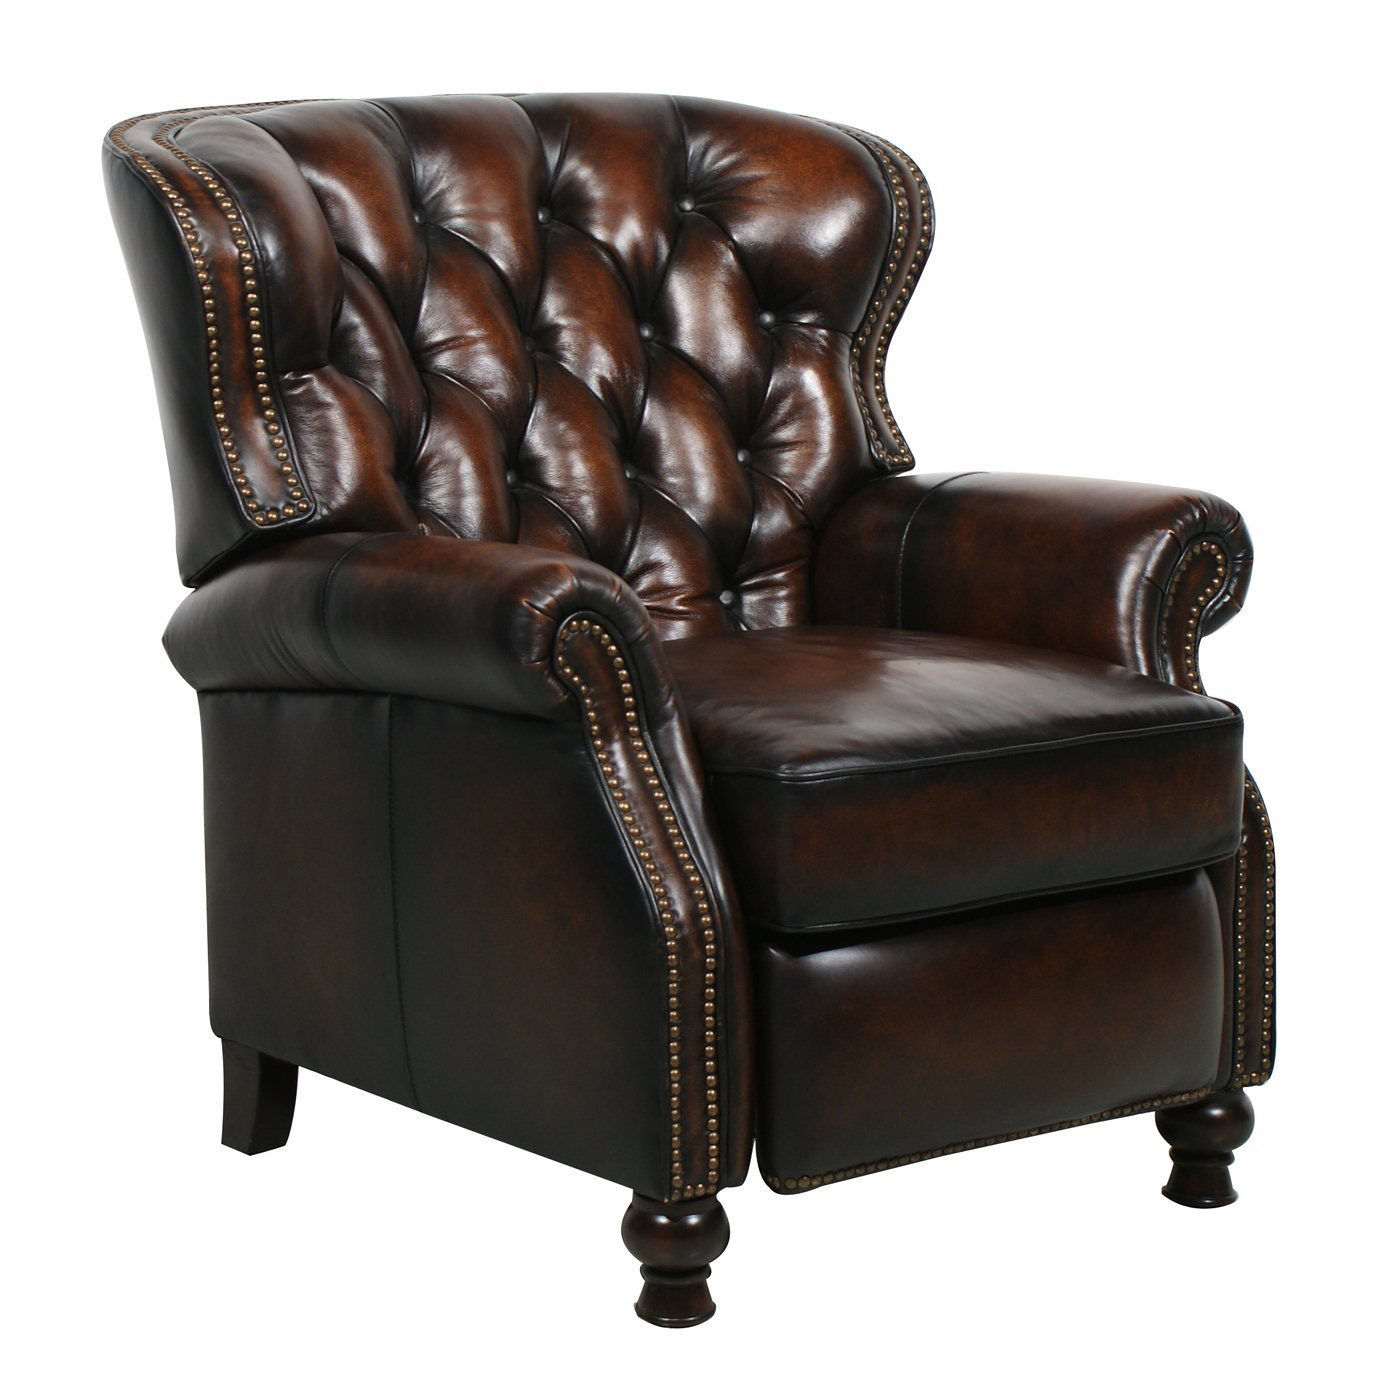 Barcalounger Presidential II Leather Recliner Chair Leather Recliner Chair